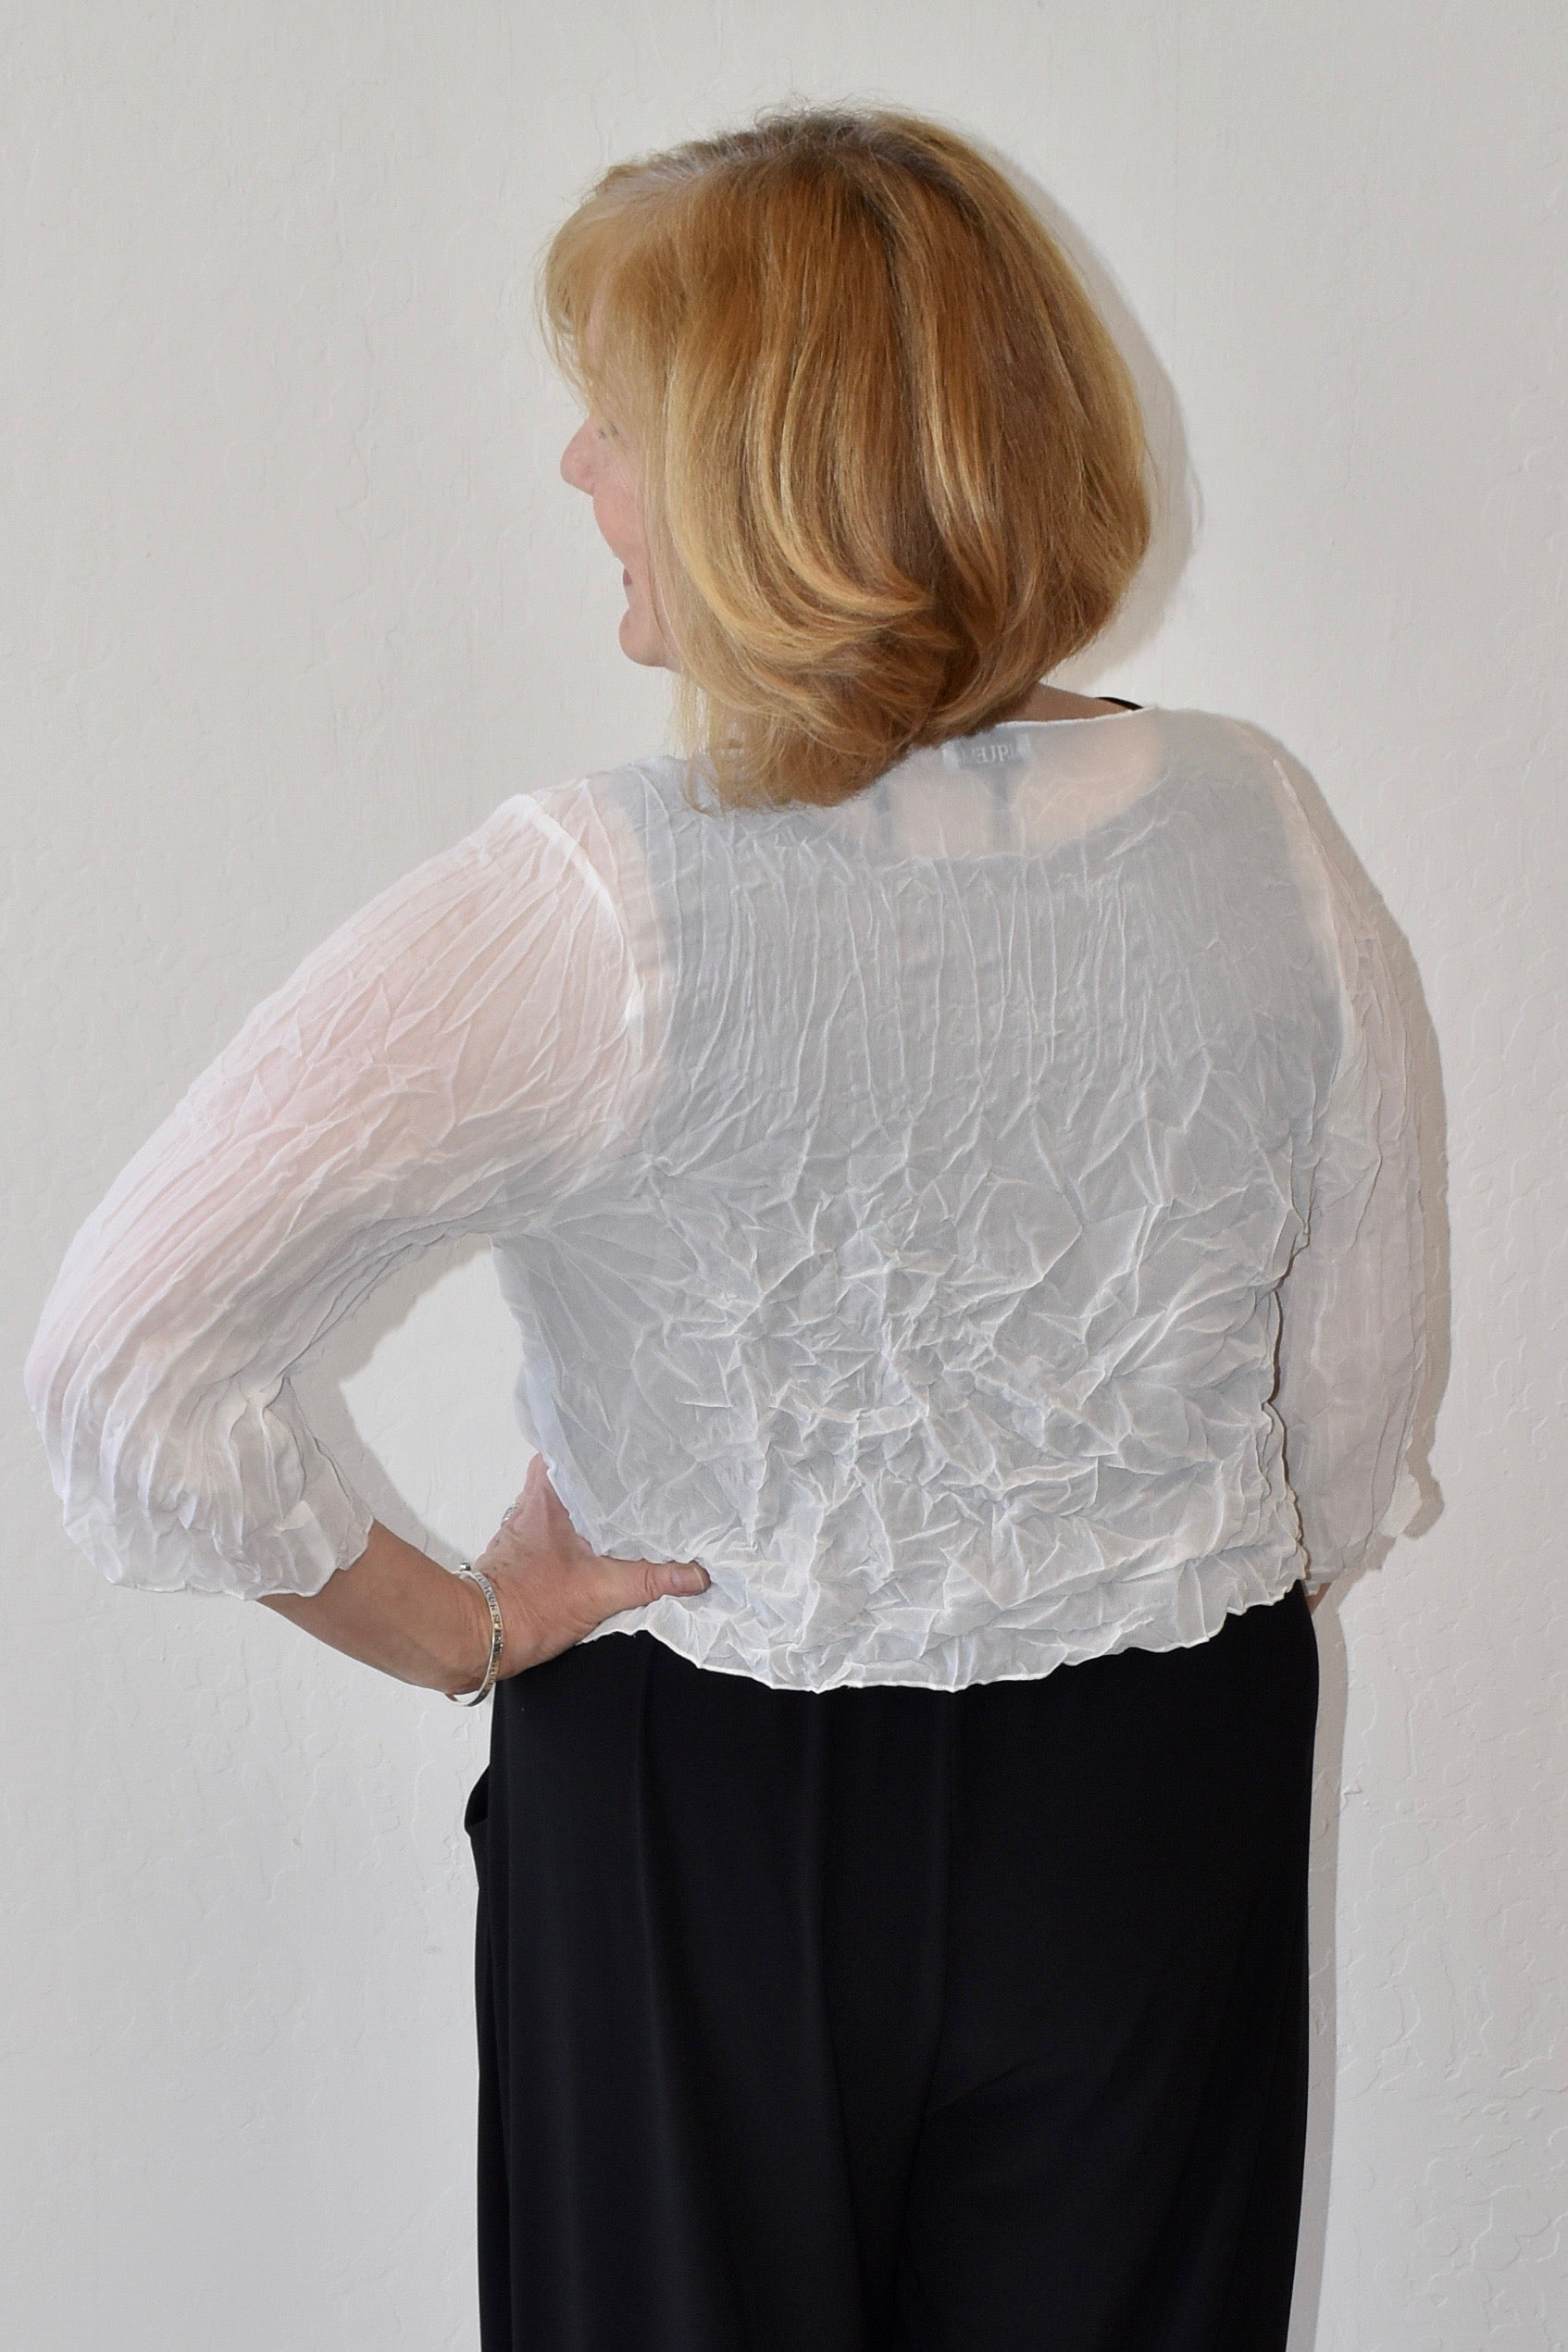 Alquema Crinkled Shrug